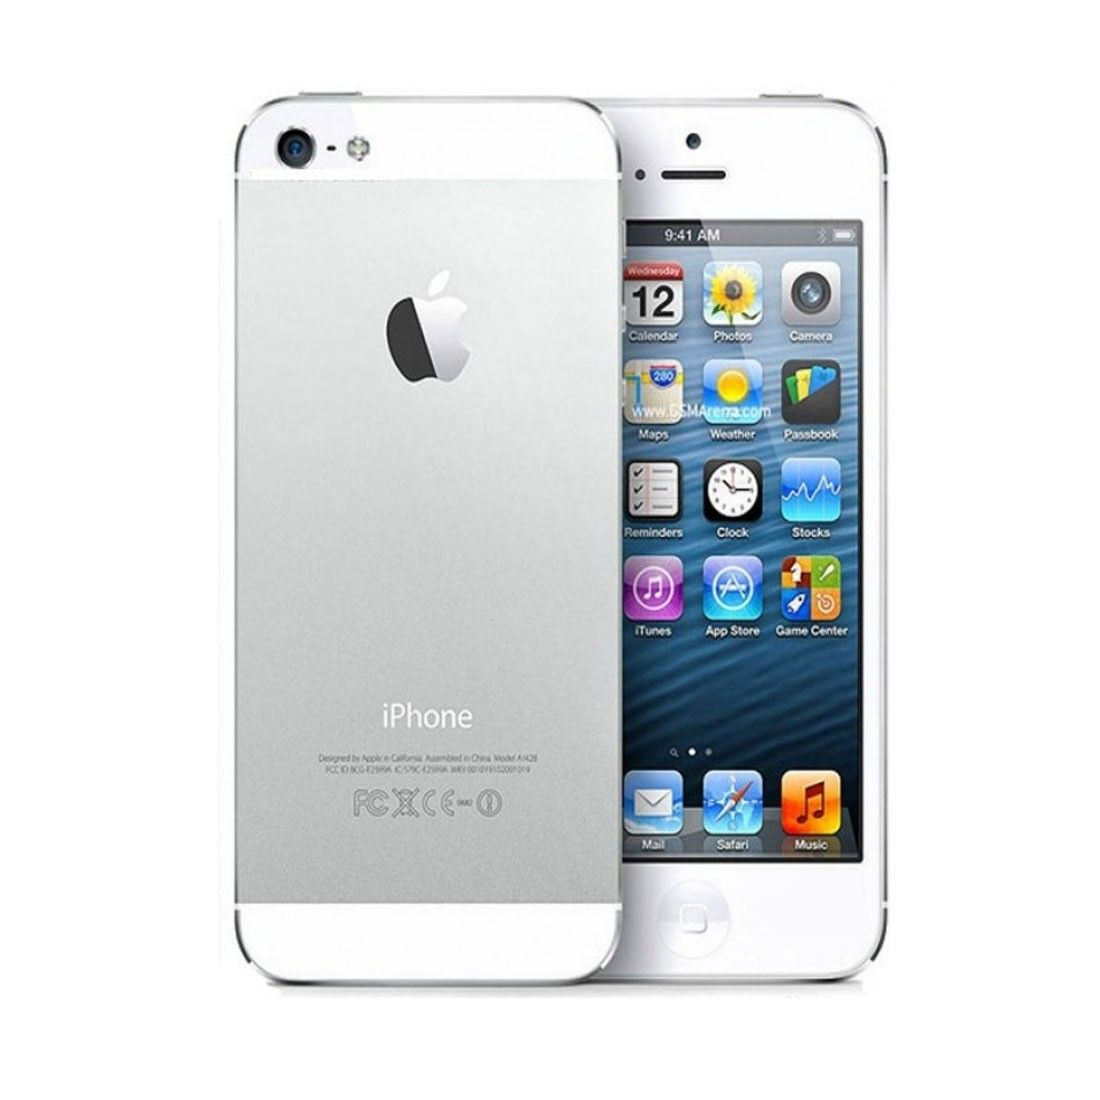 Iphone Se 16go Reconditionné Iphone 5s 32gb Silver Online At Best Price In India Shop Online